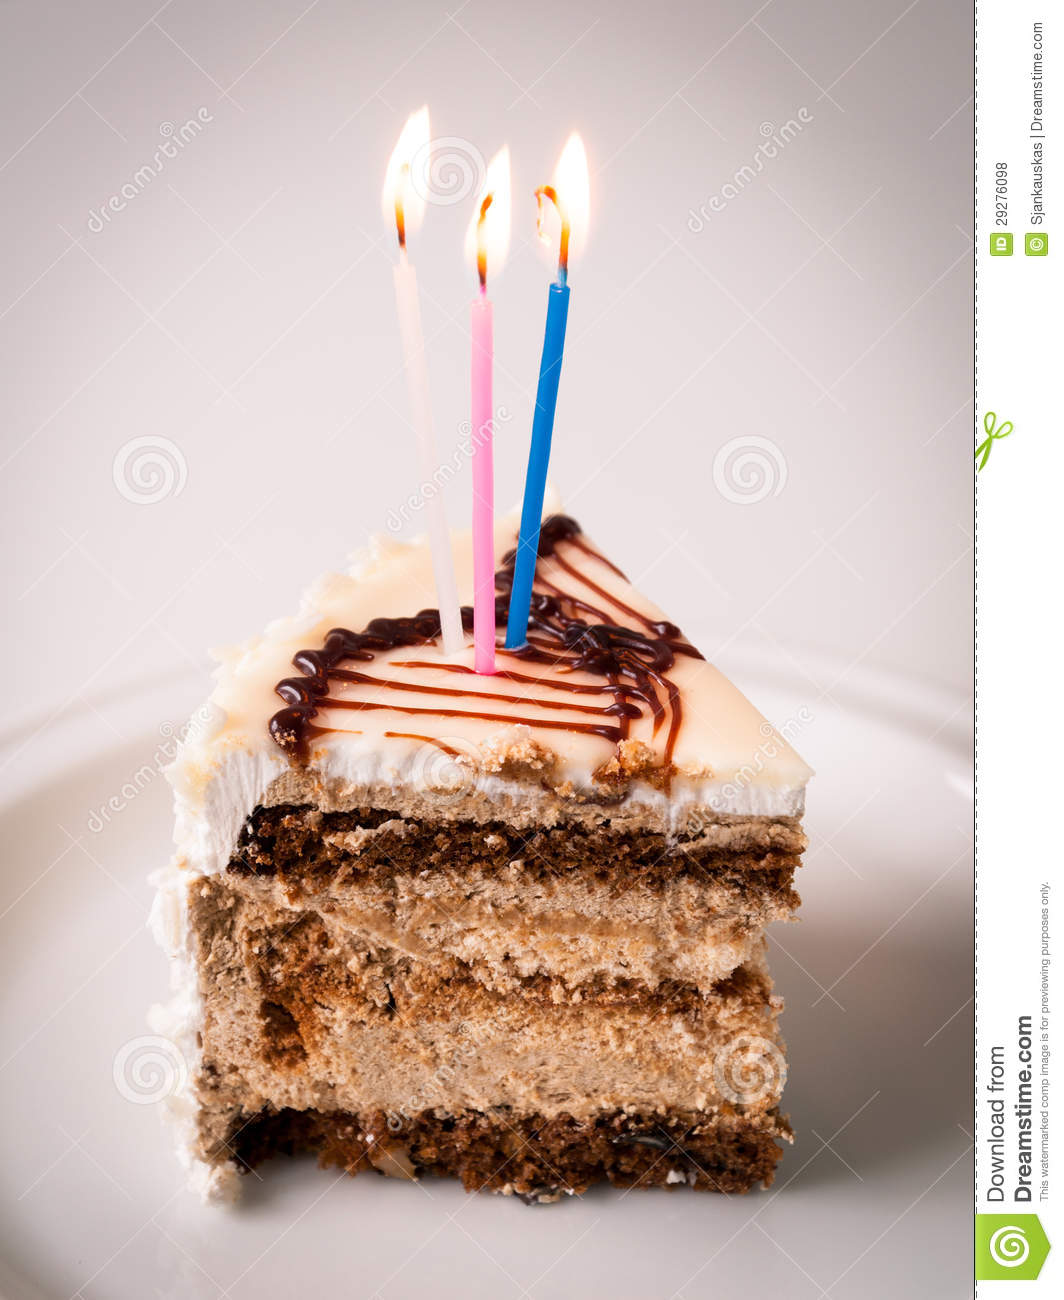 Birthday Cake Royalty Free Stock Photos Image 29276098